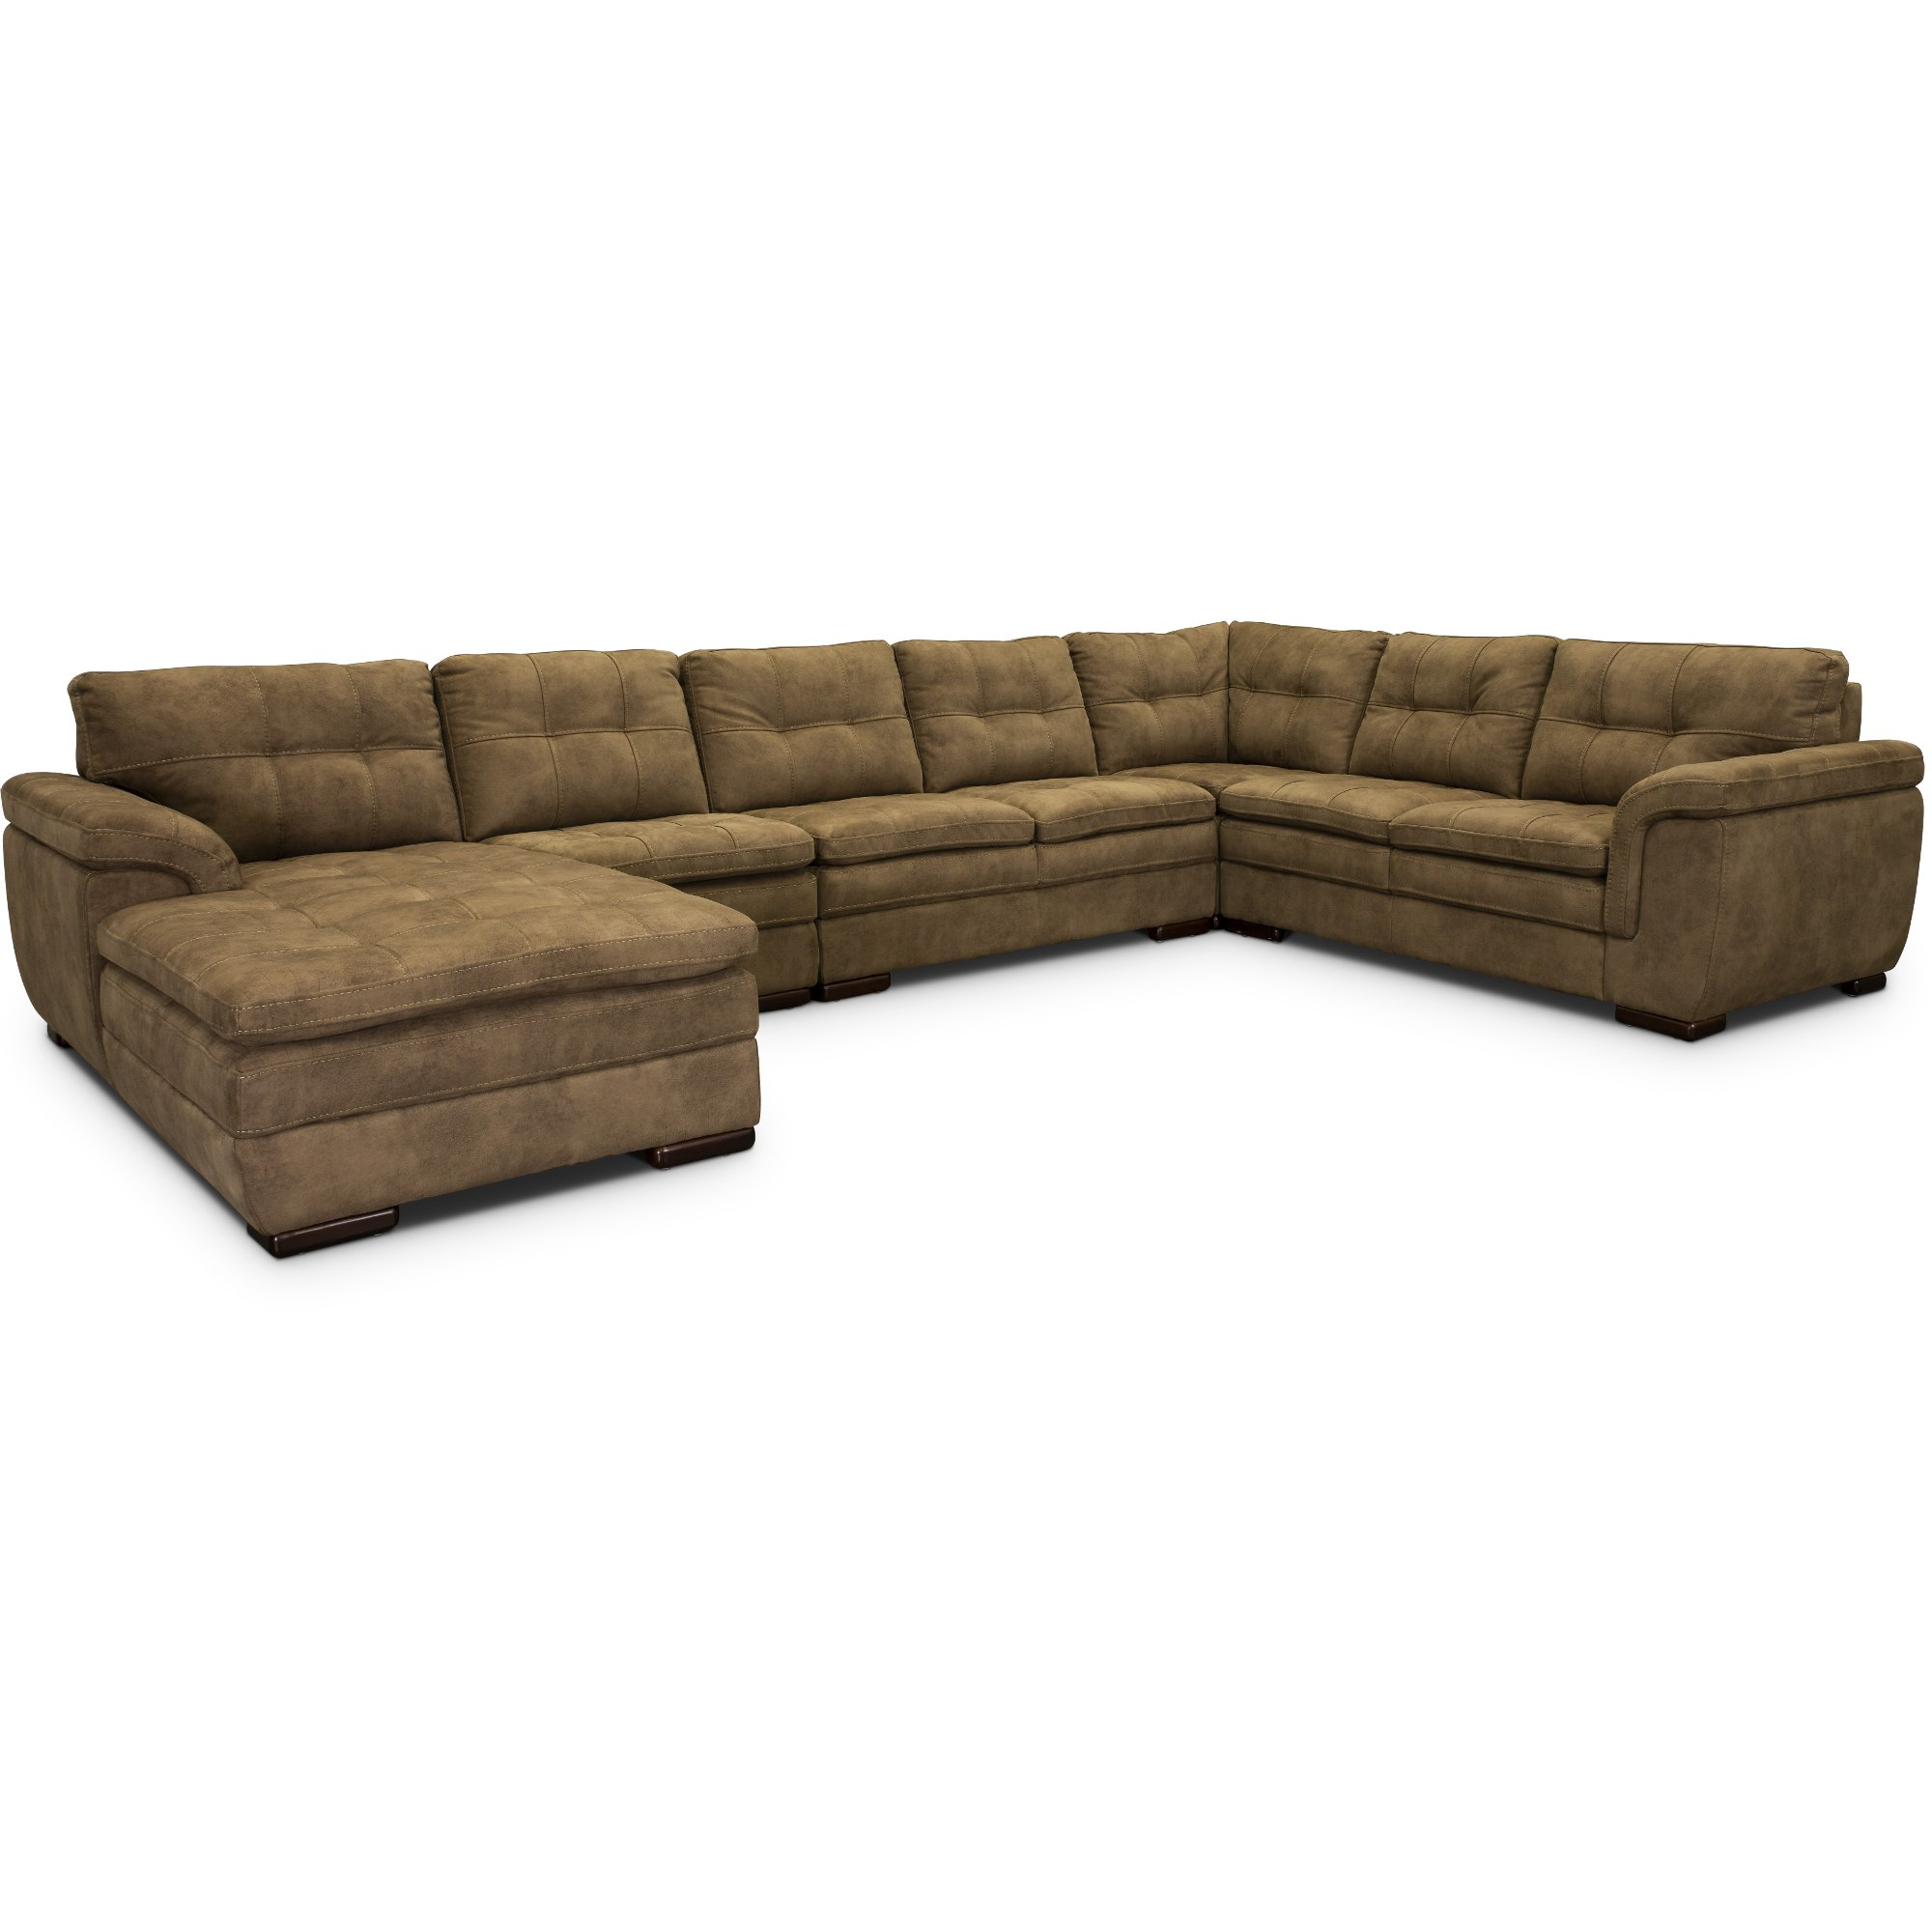 Taupe Brown 5 Piece Sectional Sofa with LAF Chaise - Sandy